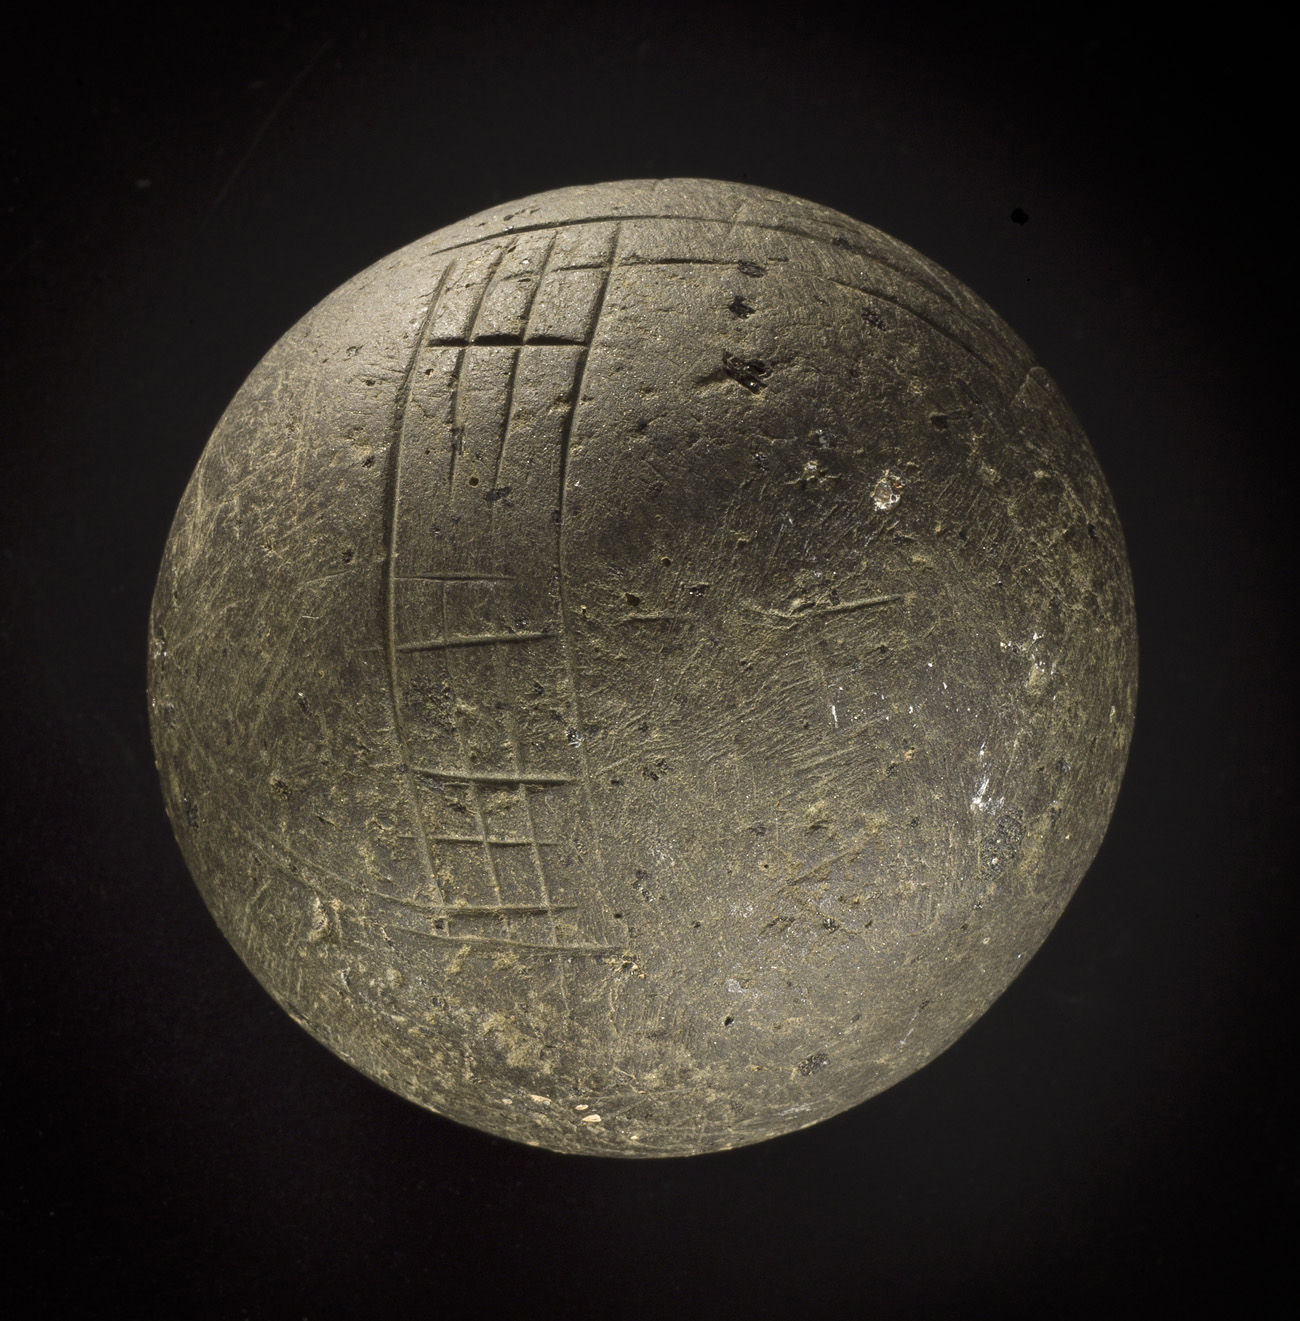 Teaching history with objects carved stone ball from